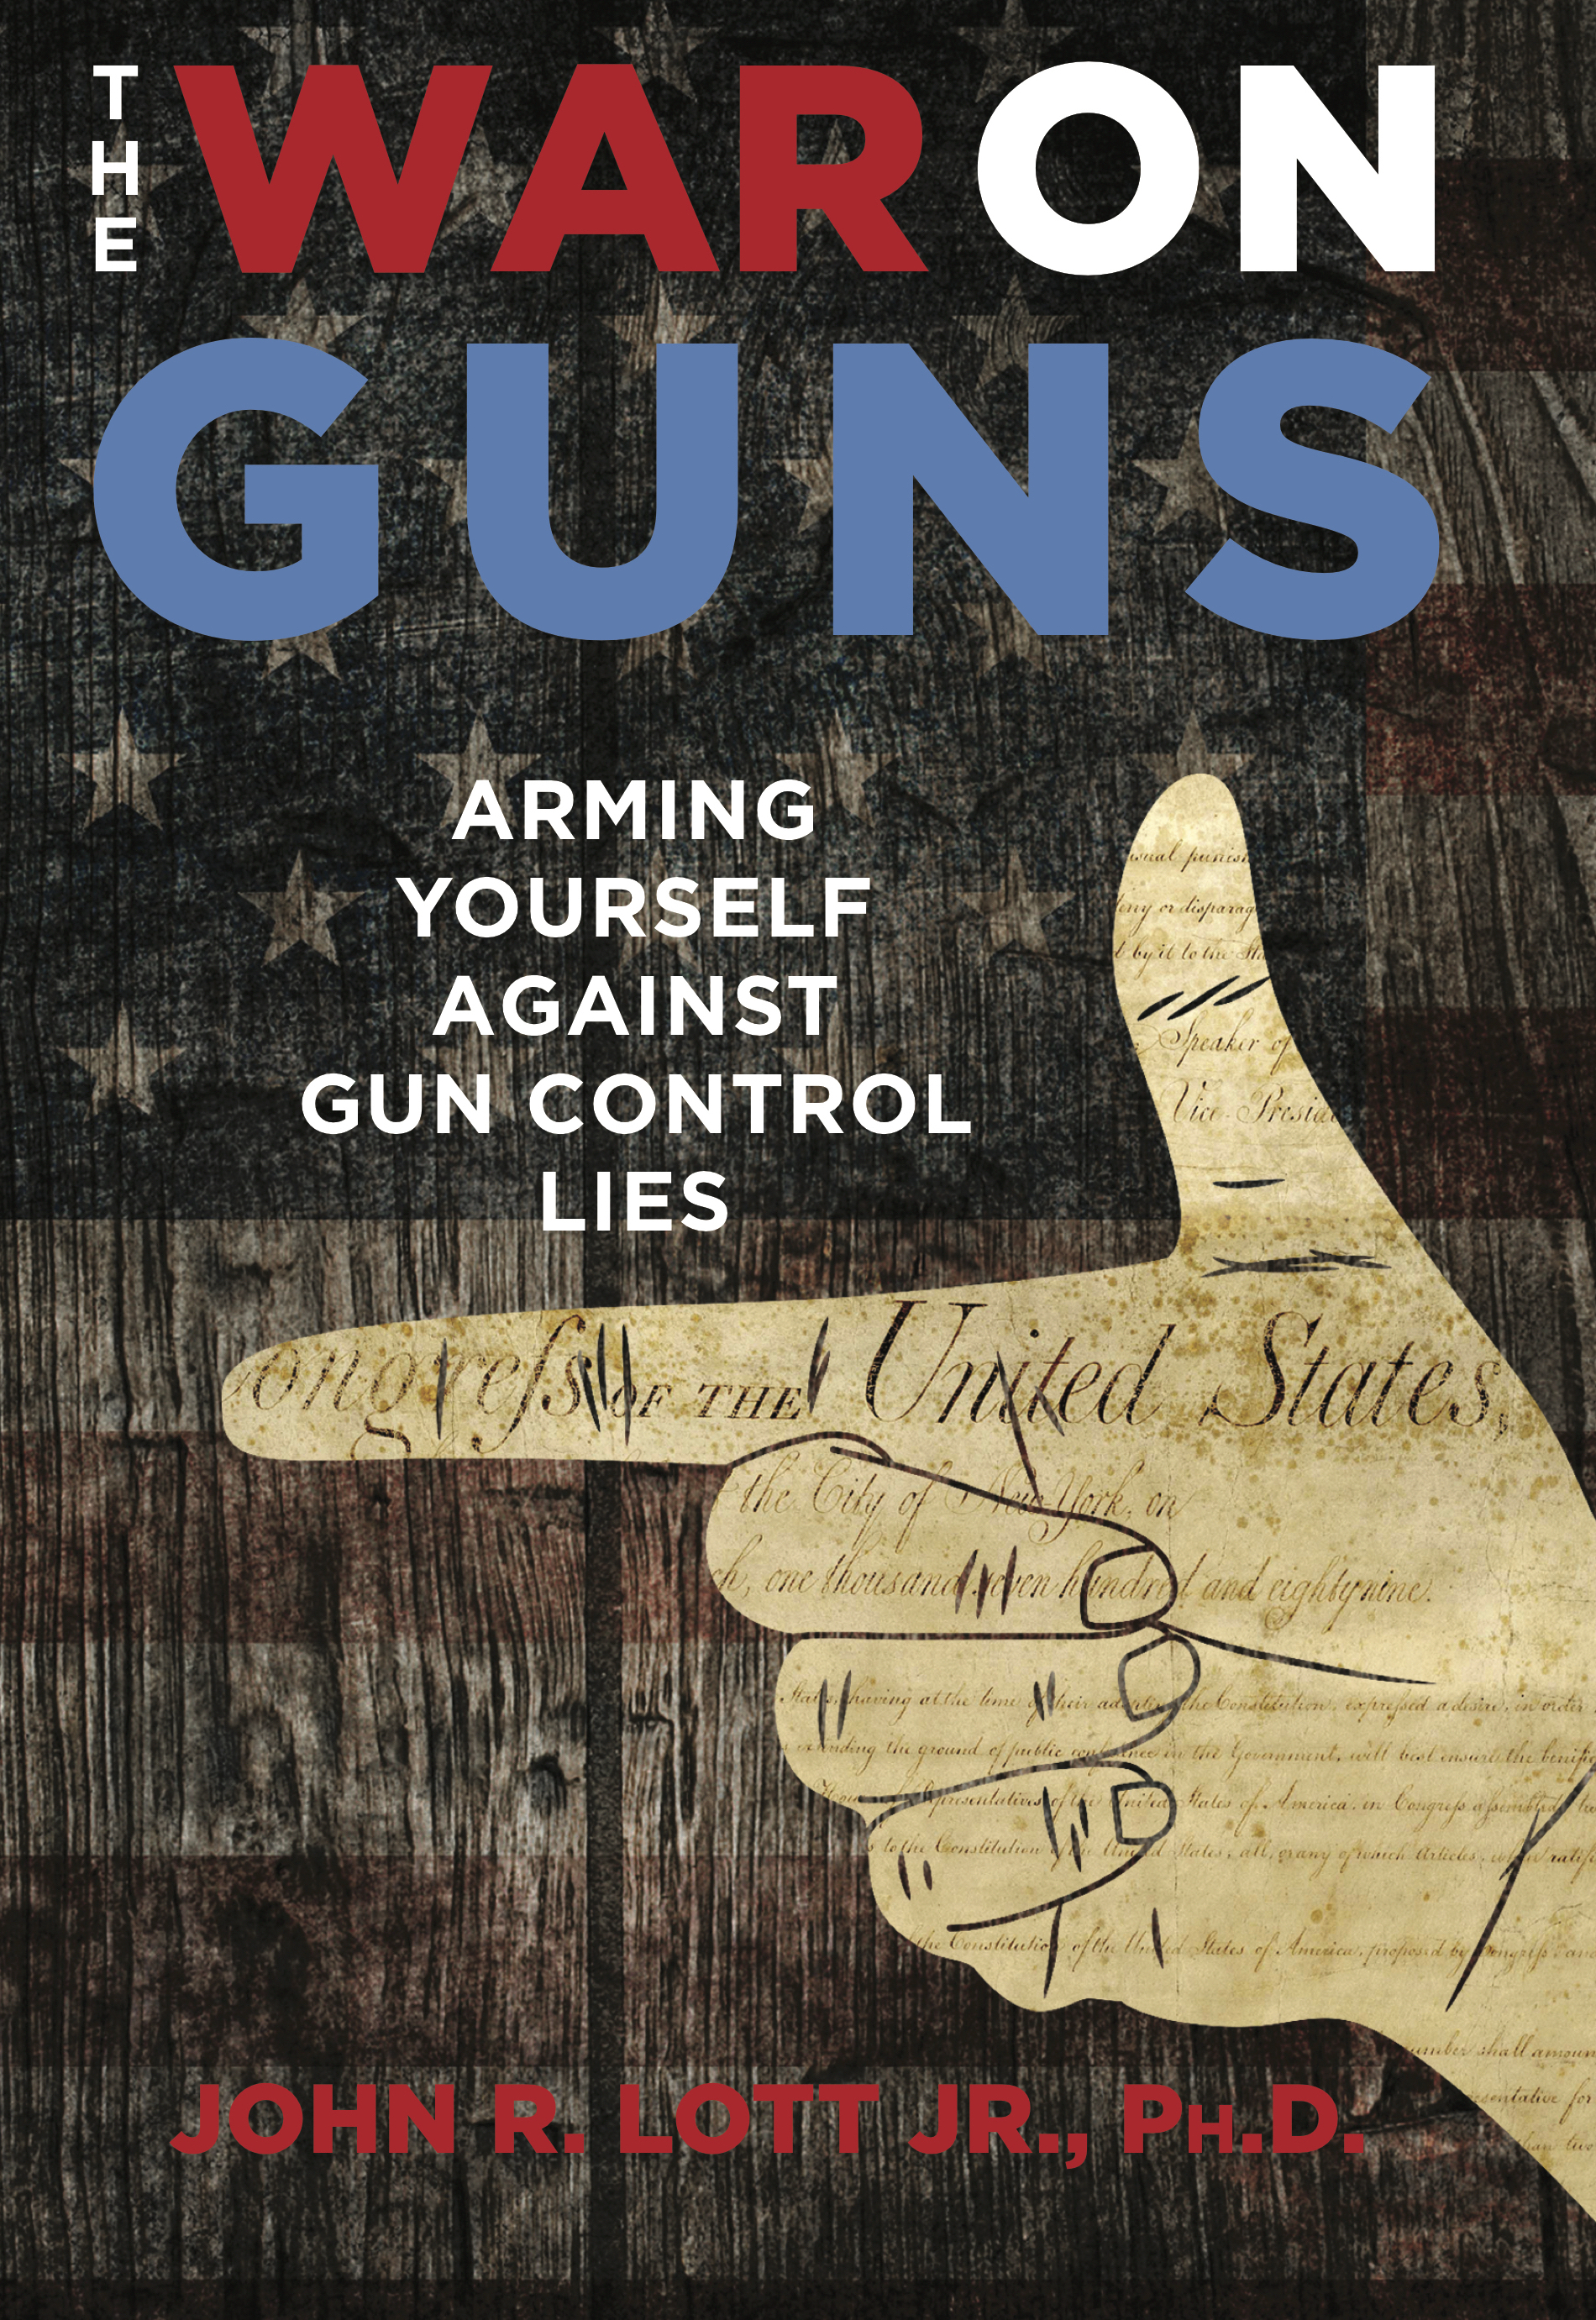 The War on Guns narrow cover